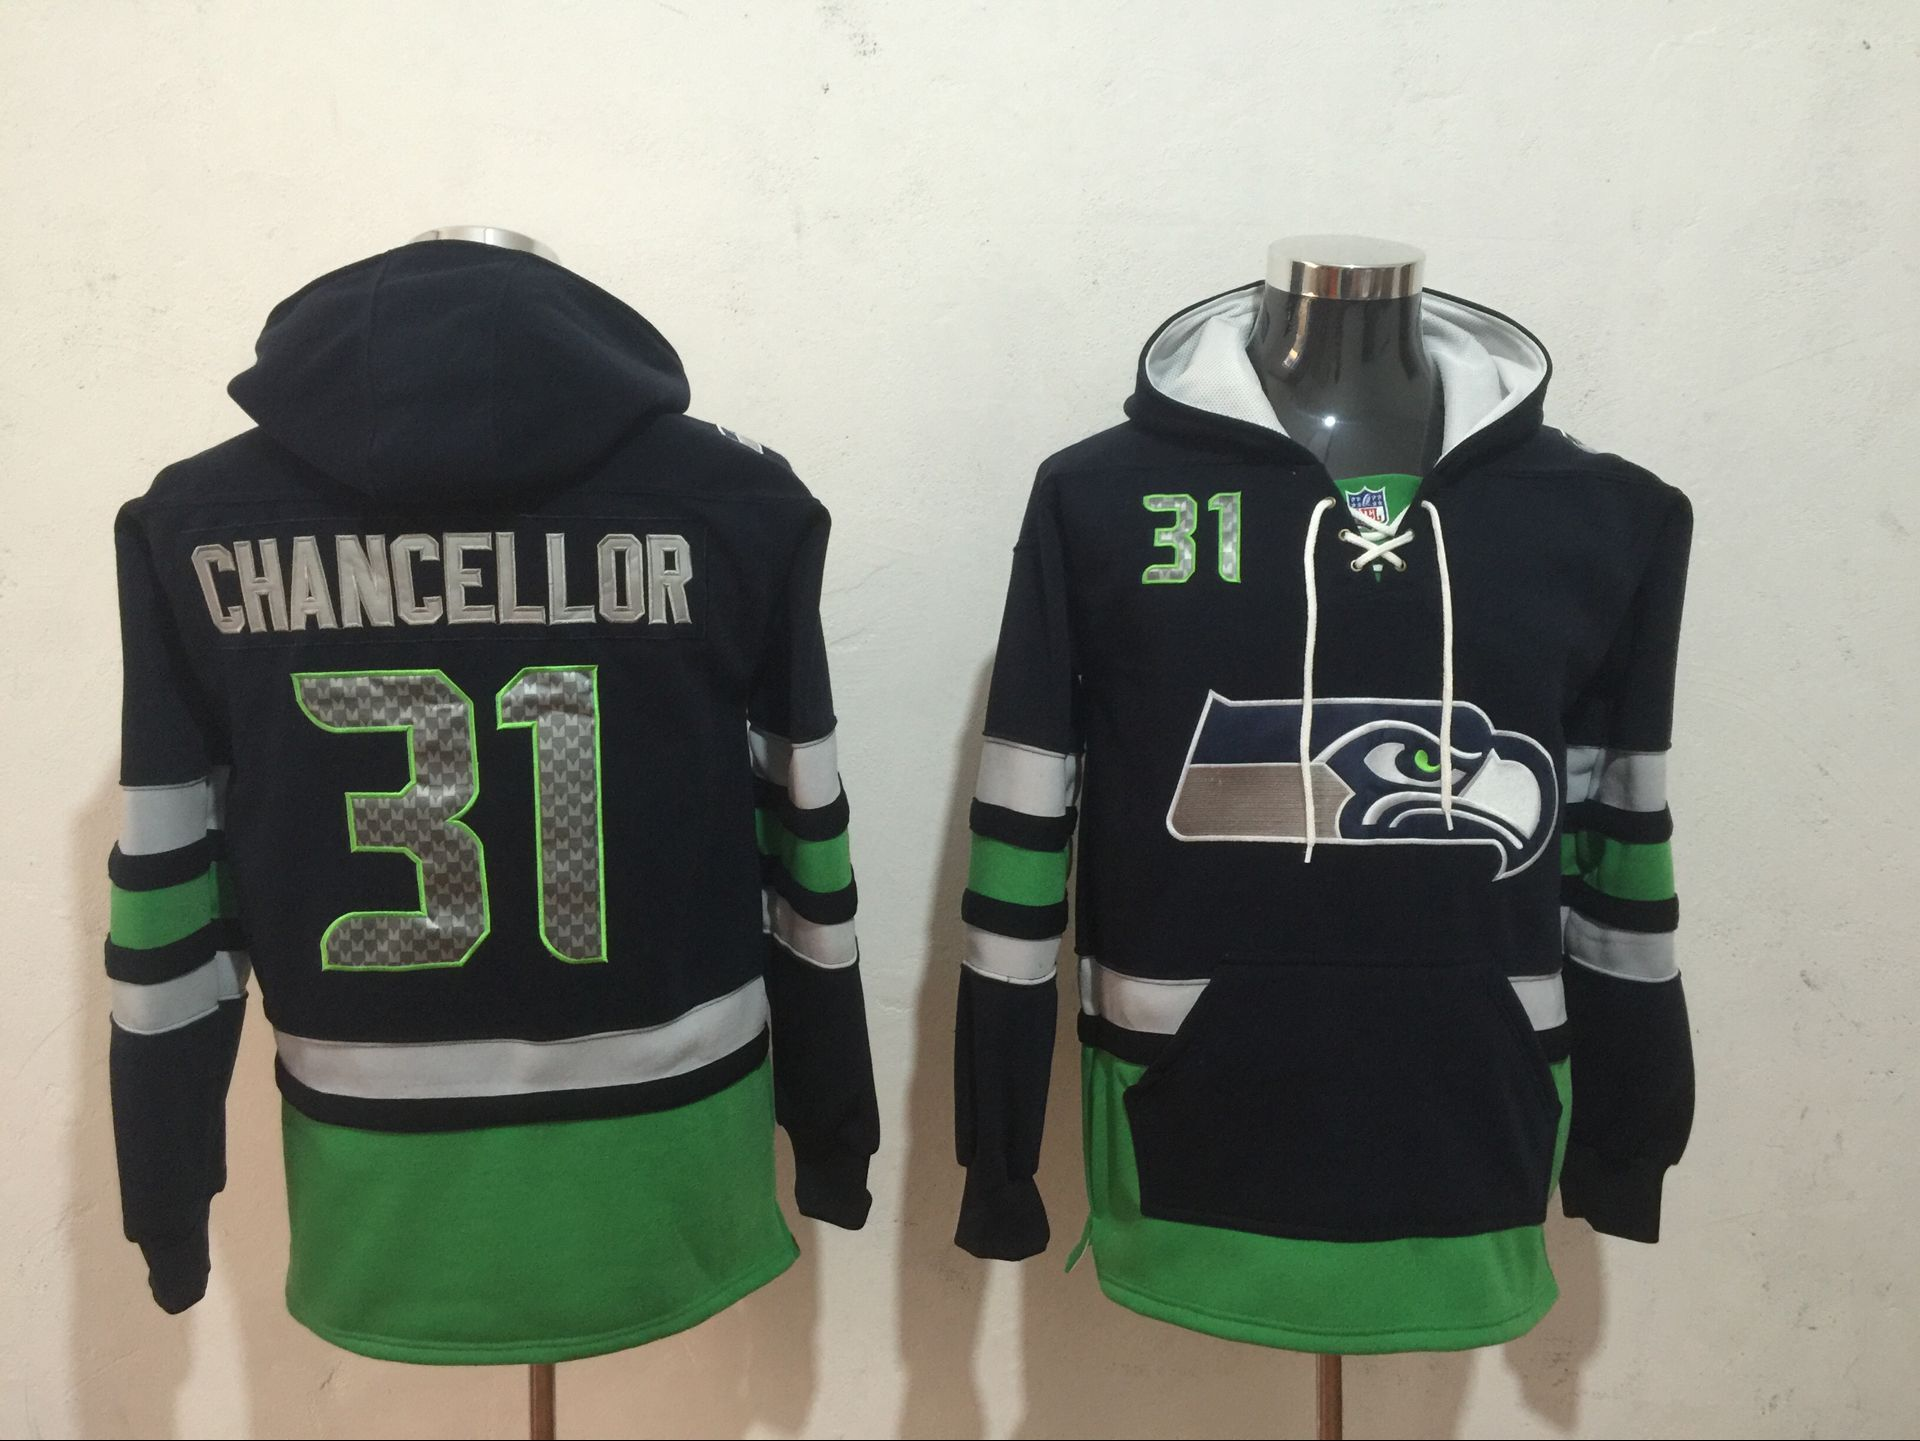 Men NFL Nike Seattle Seahawks 31 Chancellor black Sweatshirts